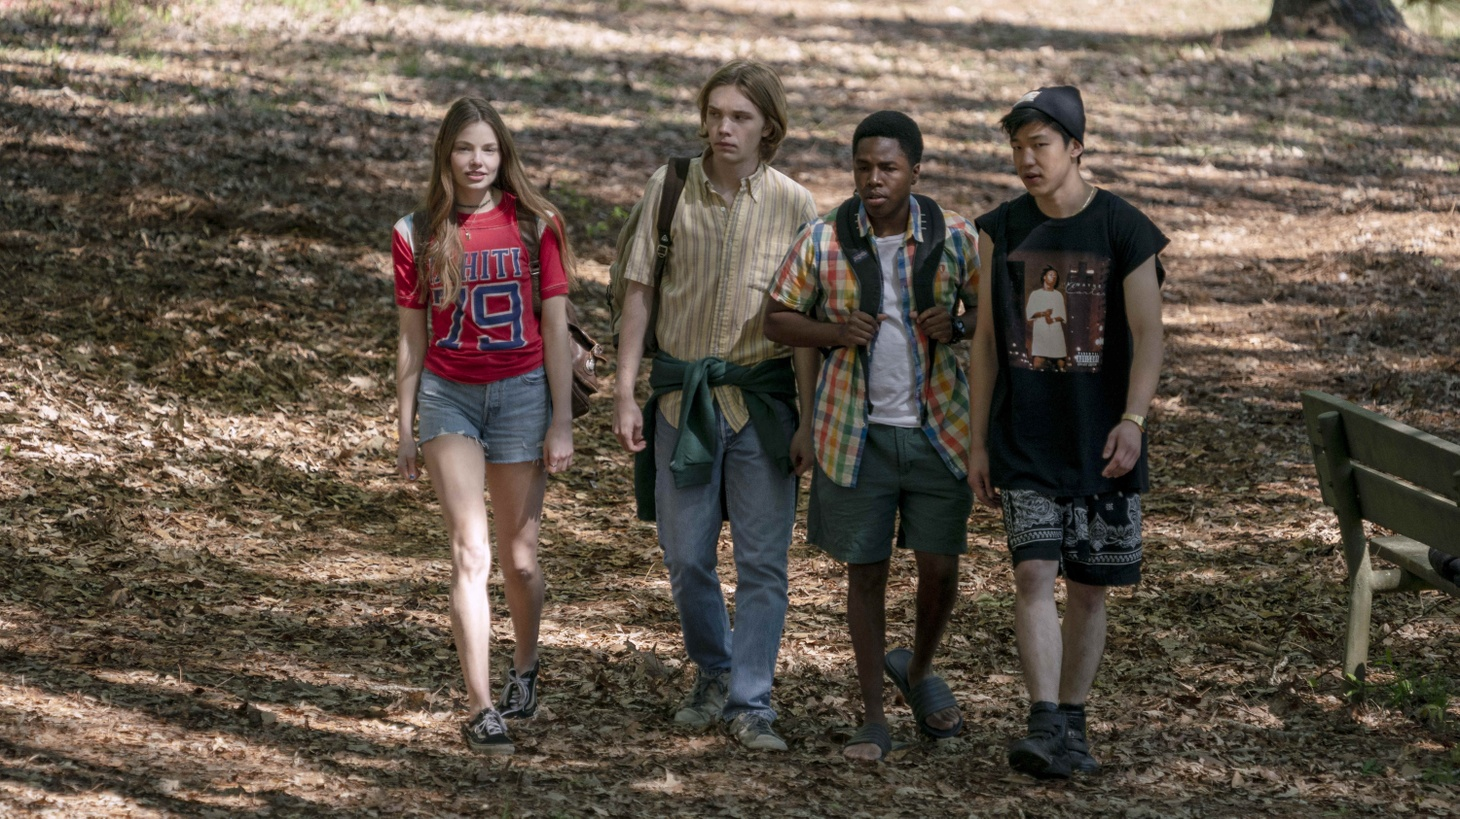 Alaska (Kristine Froseth), Miles (Charlie Plummer), The Colonel (Denny Love), and Takumi (Jay Lee), in 'Looking for Alaska'.